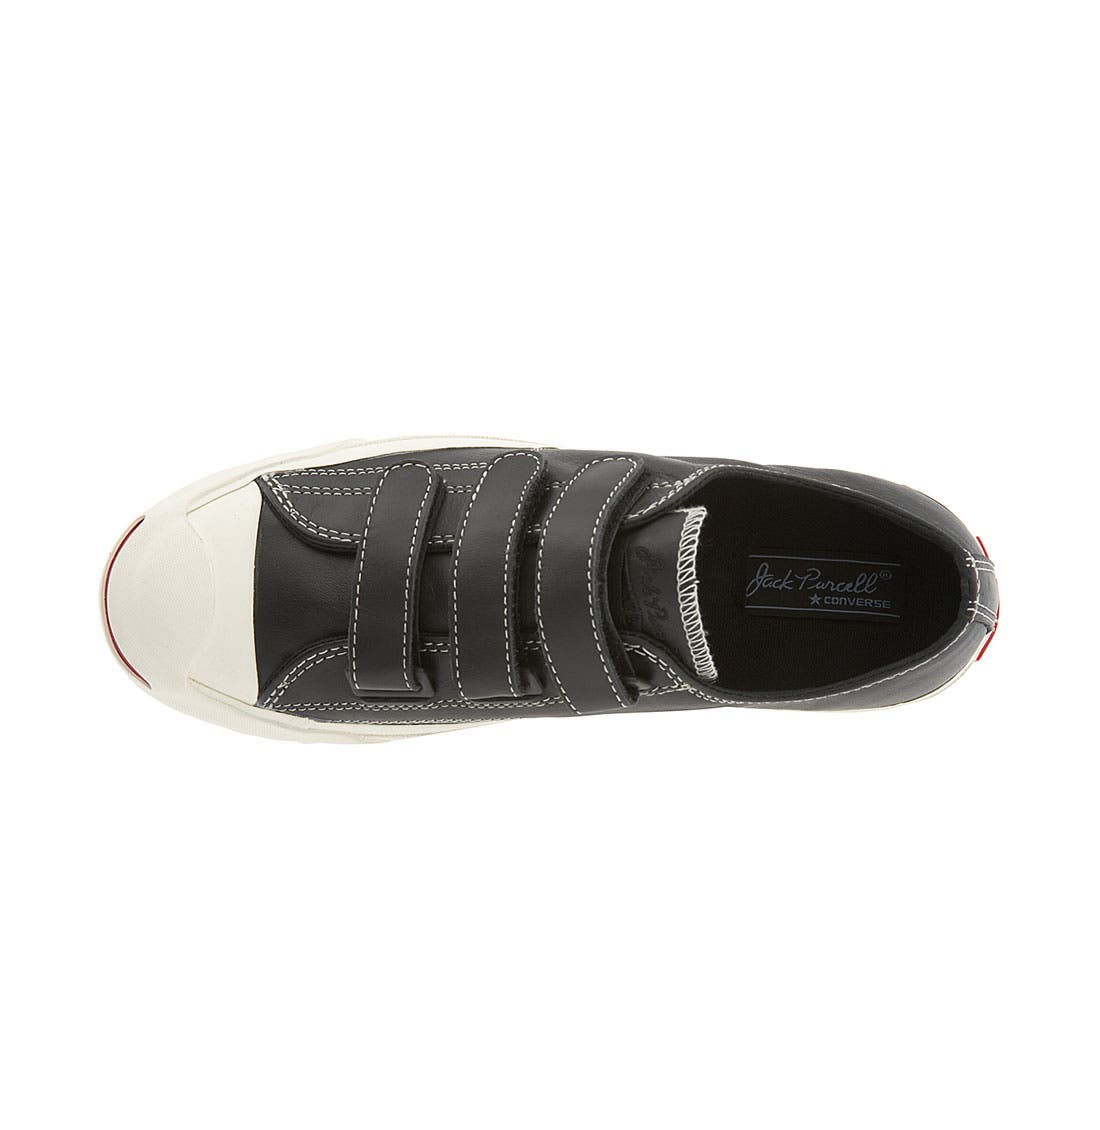 CONVERSE,                             'Jack Purcell' Velcro<sup>®</sup> Sneaker,                             Alternate thumbnail 2, color,                             001